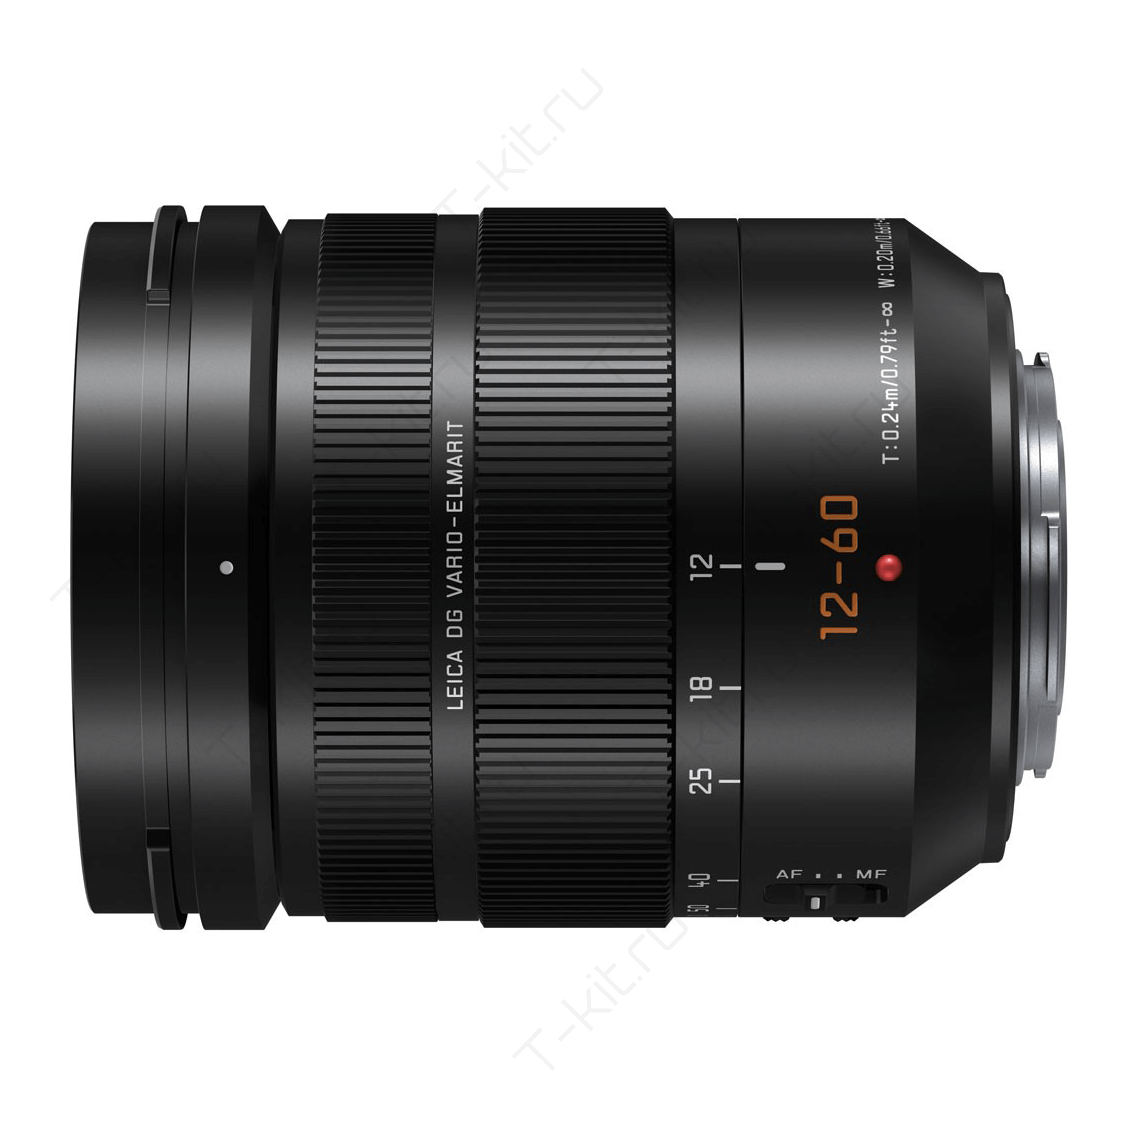 Panasonic 12-60mm вид сбоку